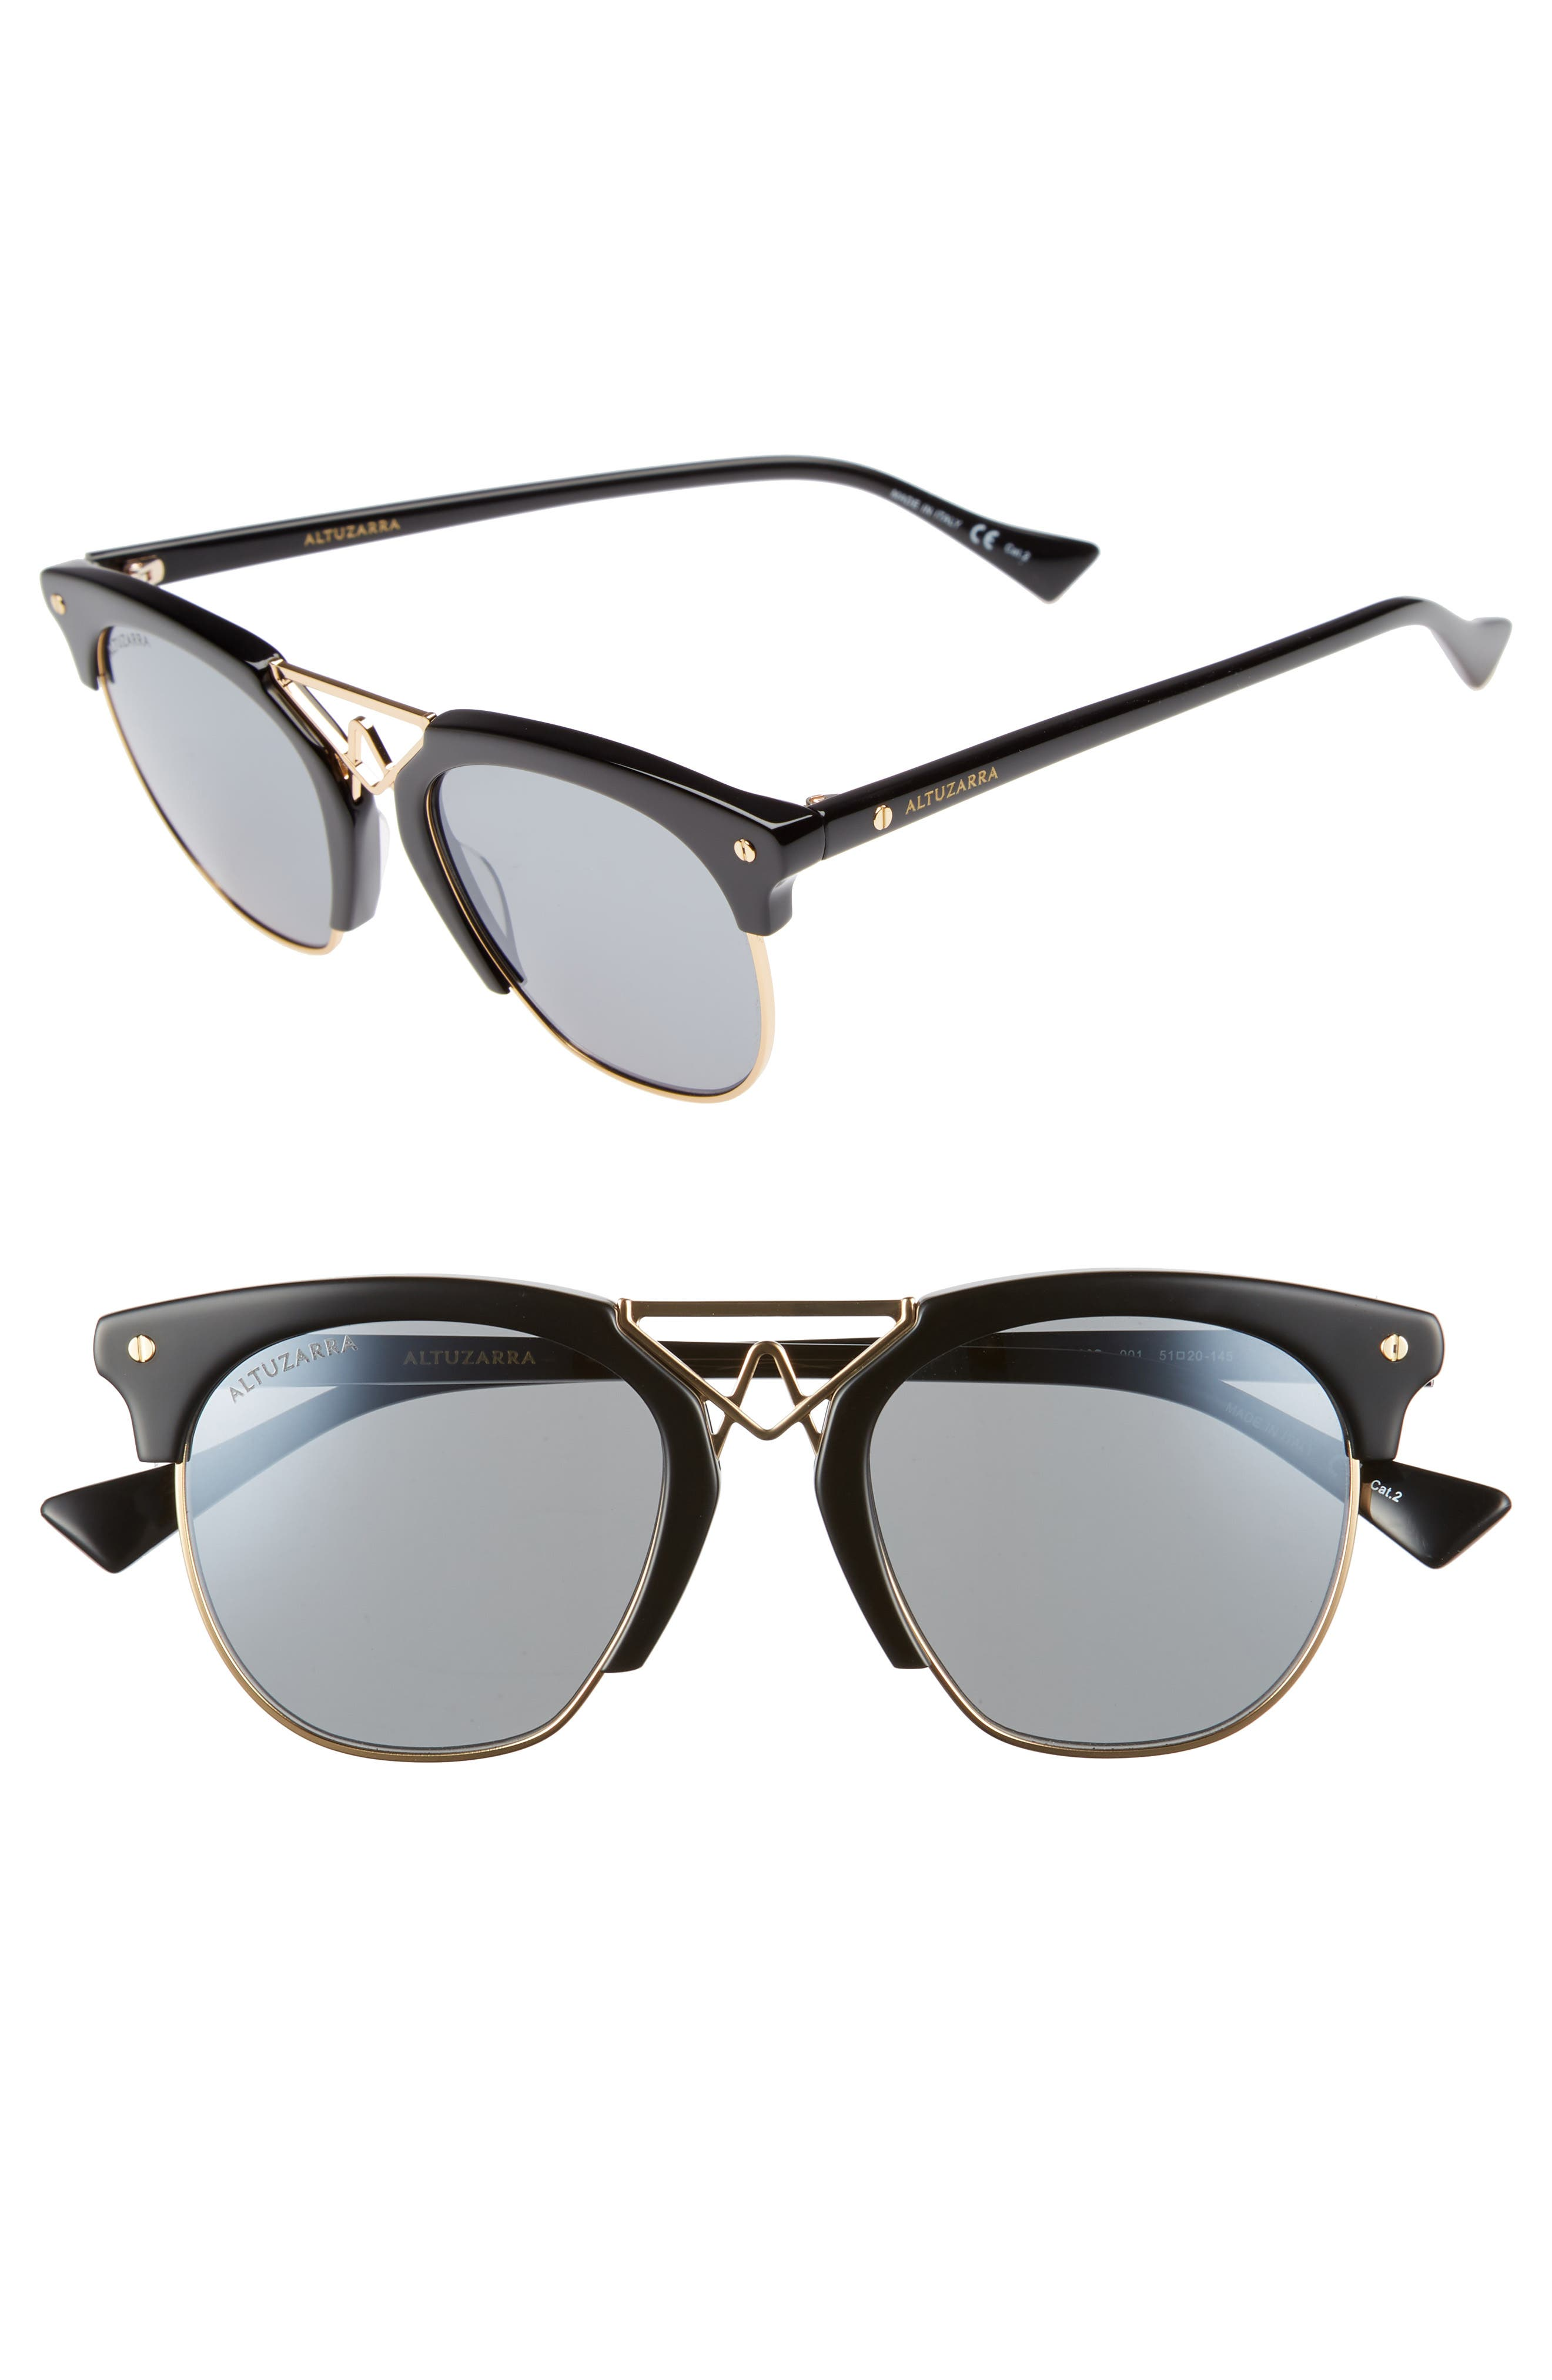 51mm Round Sunglasses,                         Main,                         color, BLACK/ GOLD